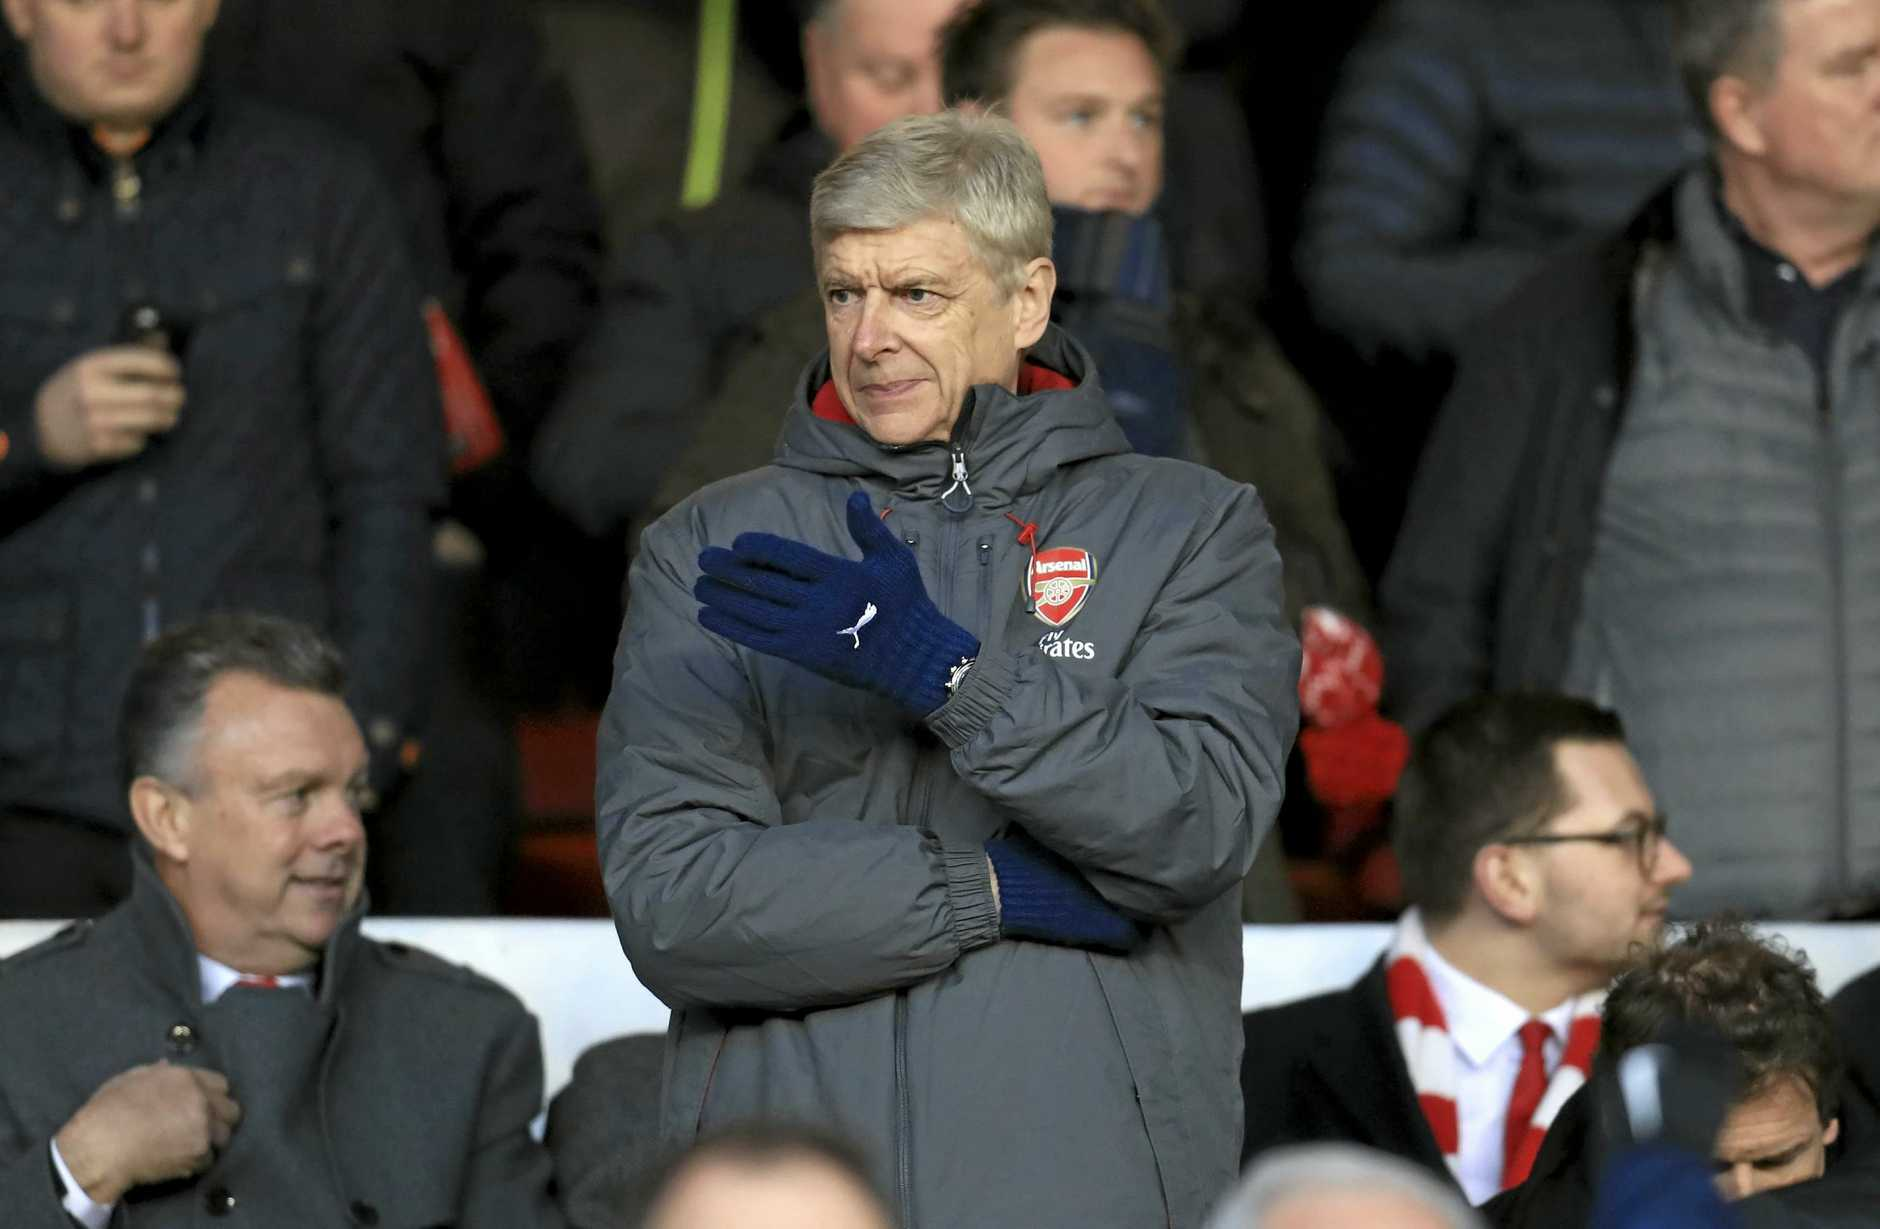 Arsenal manager Arsene Wenger gestures from the stands during the clash against Nottingham Forest.